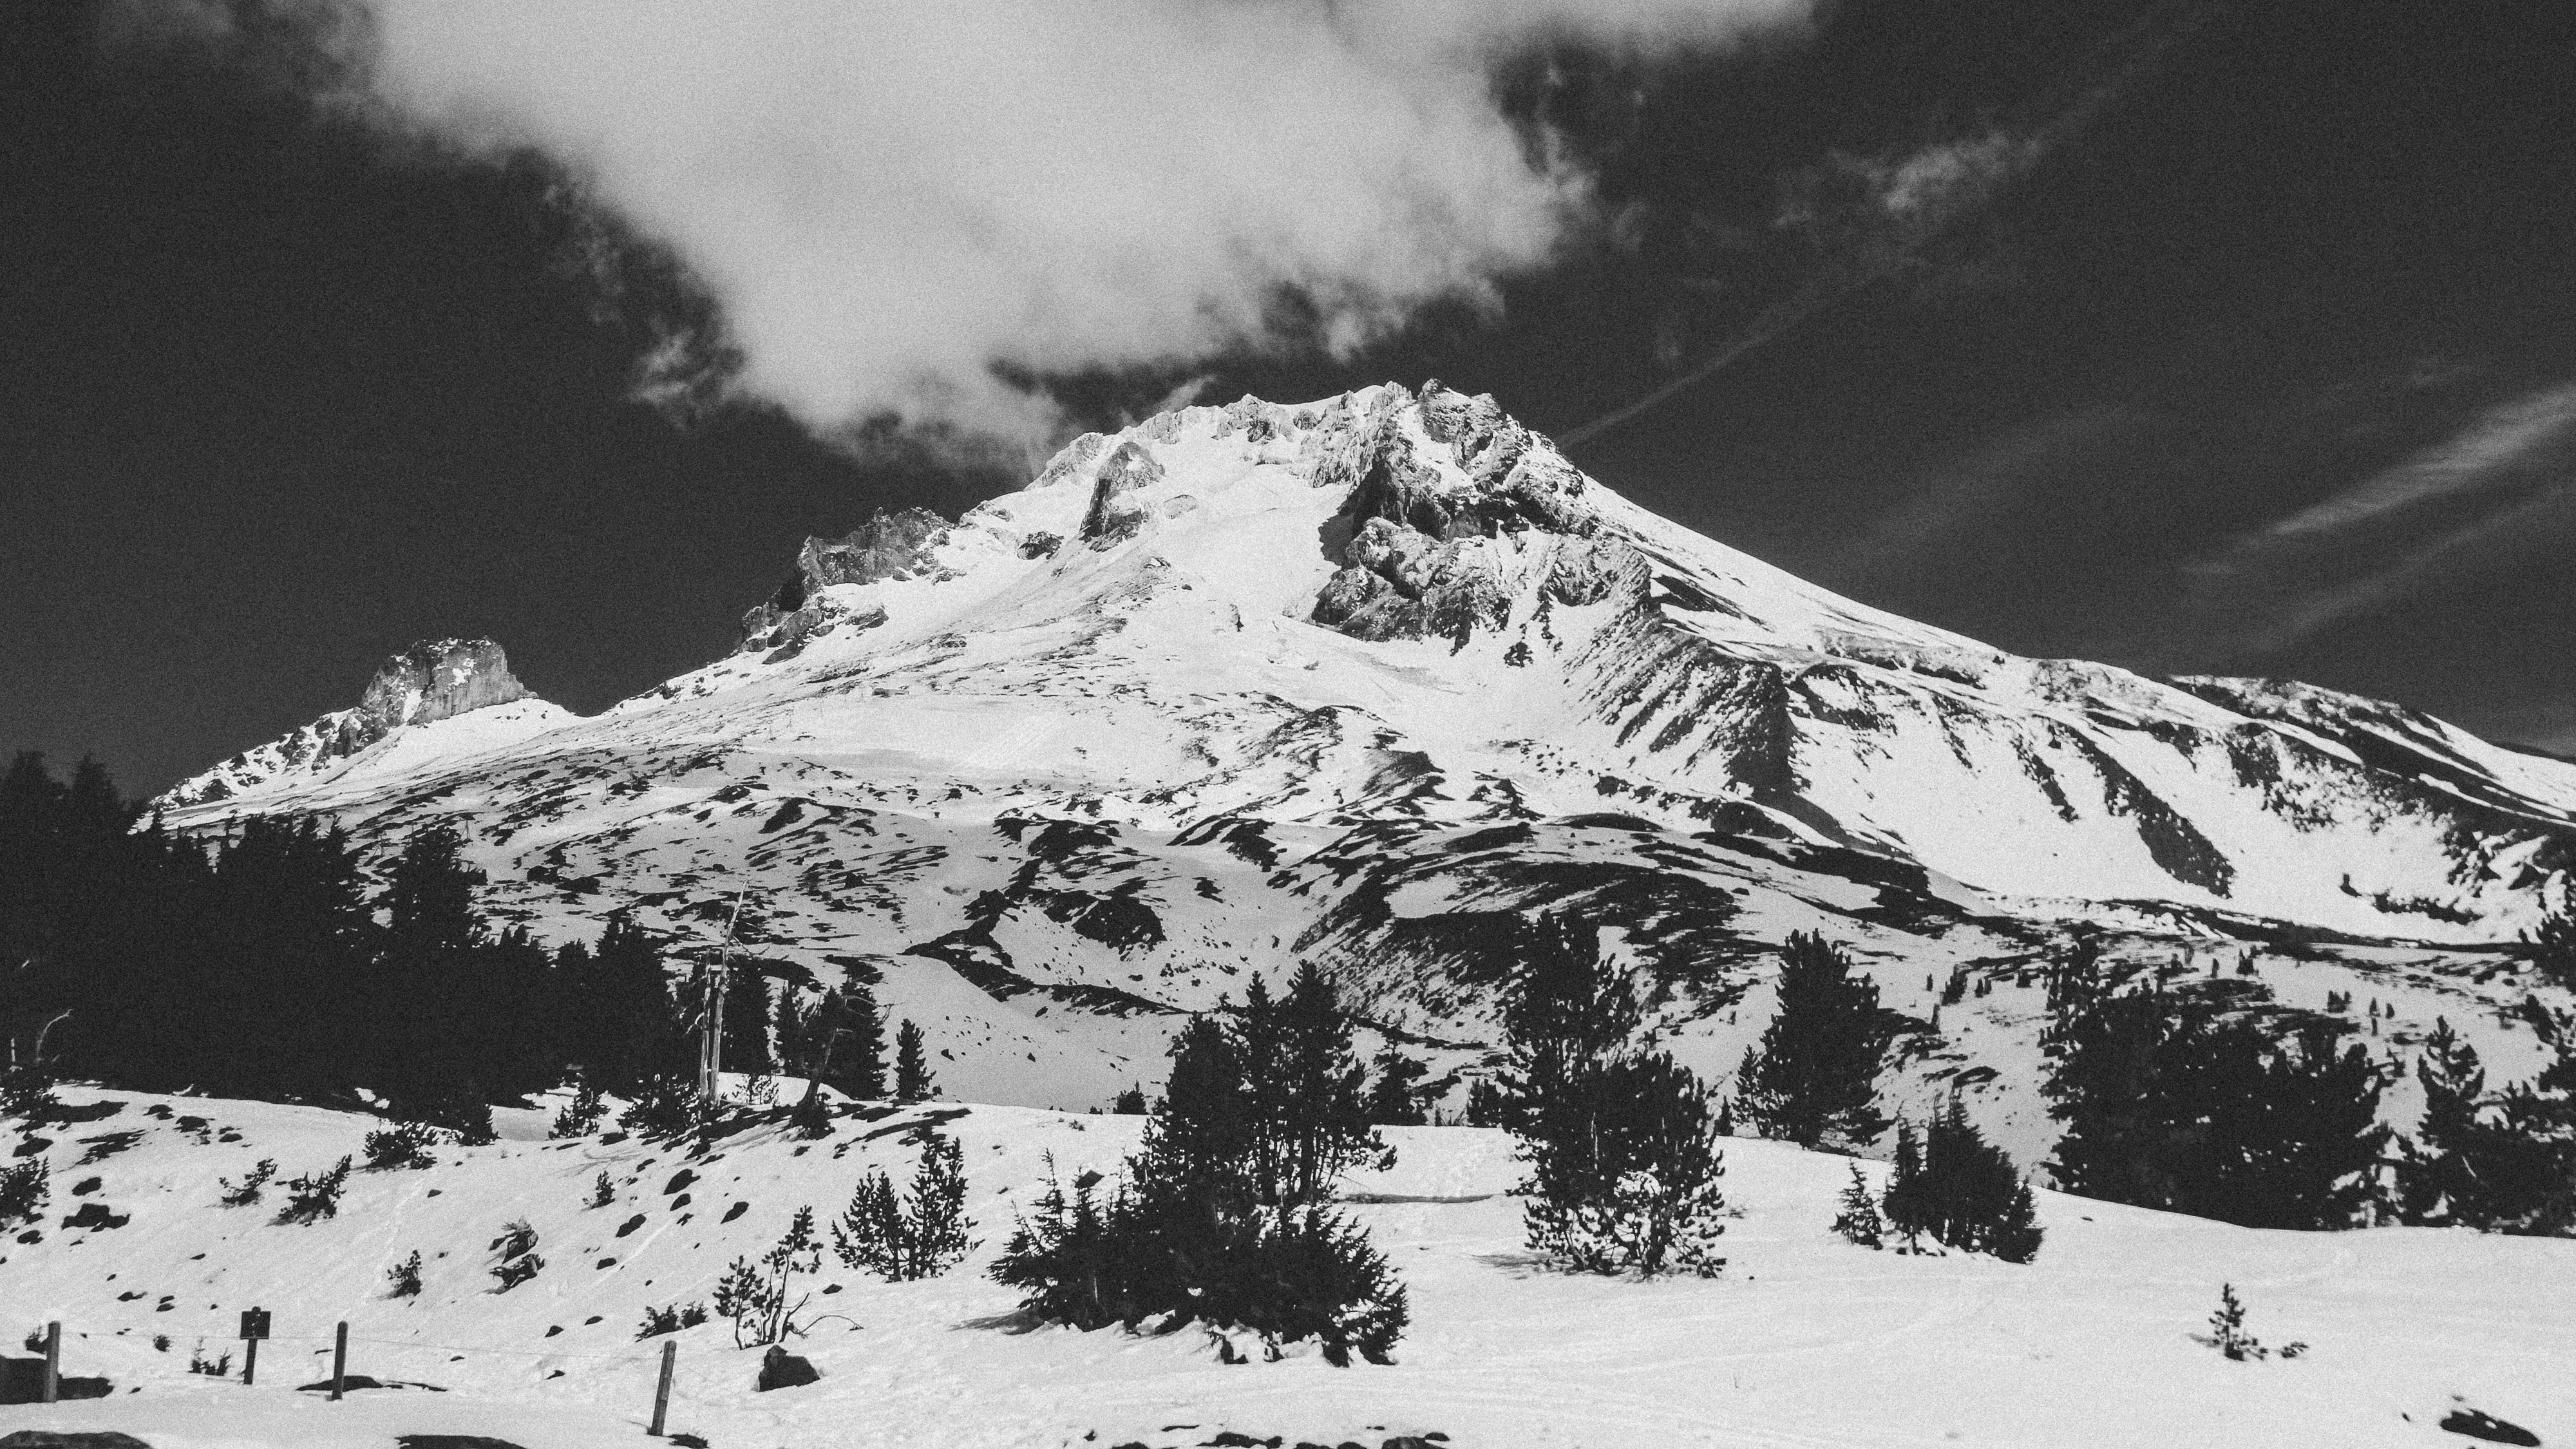 grayscale photography of snow mountain